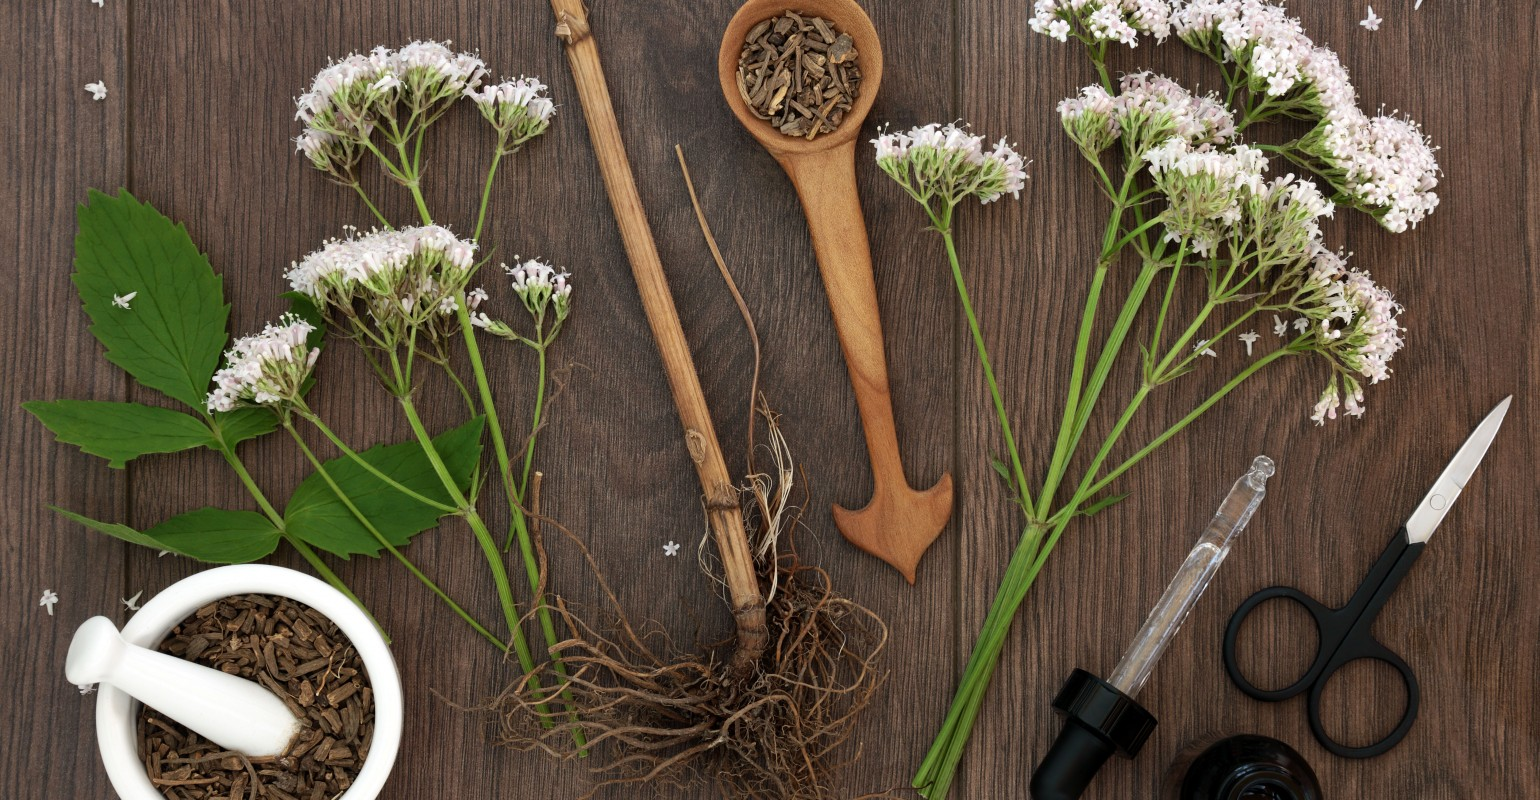 Stress in America and possible botanical solutions   Natural ... on herb garden table, herb garden font, herb garden ideas, herb garden direction, herb garden spacing, herb garden layout, herb garden common mistakes, herb garden theme, herb garden background, herb garden attraction, herb garden art, herb garden fabric,